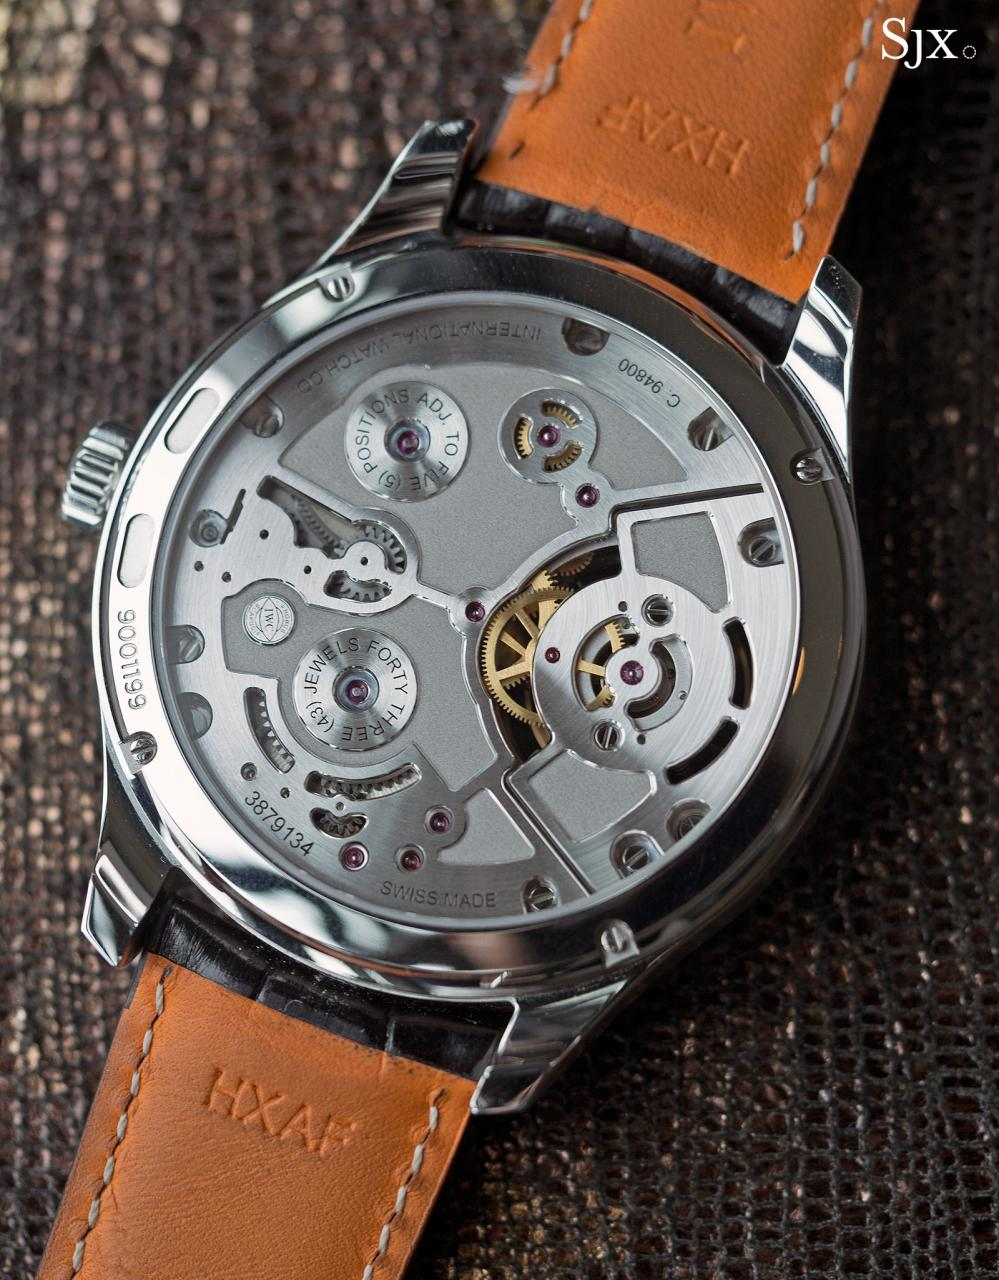 IWC Portugieser Constant-Force Tourbillon 8